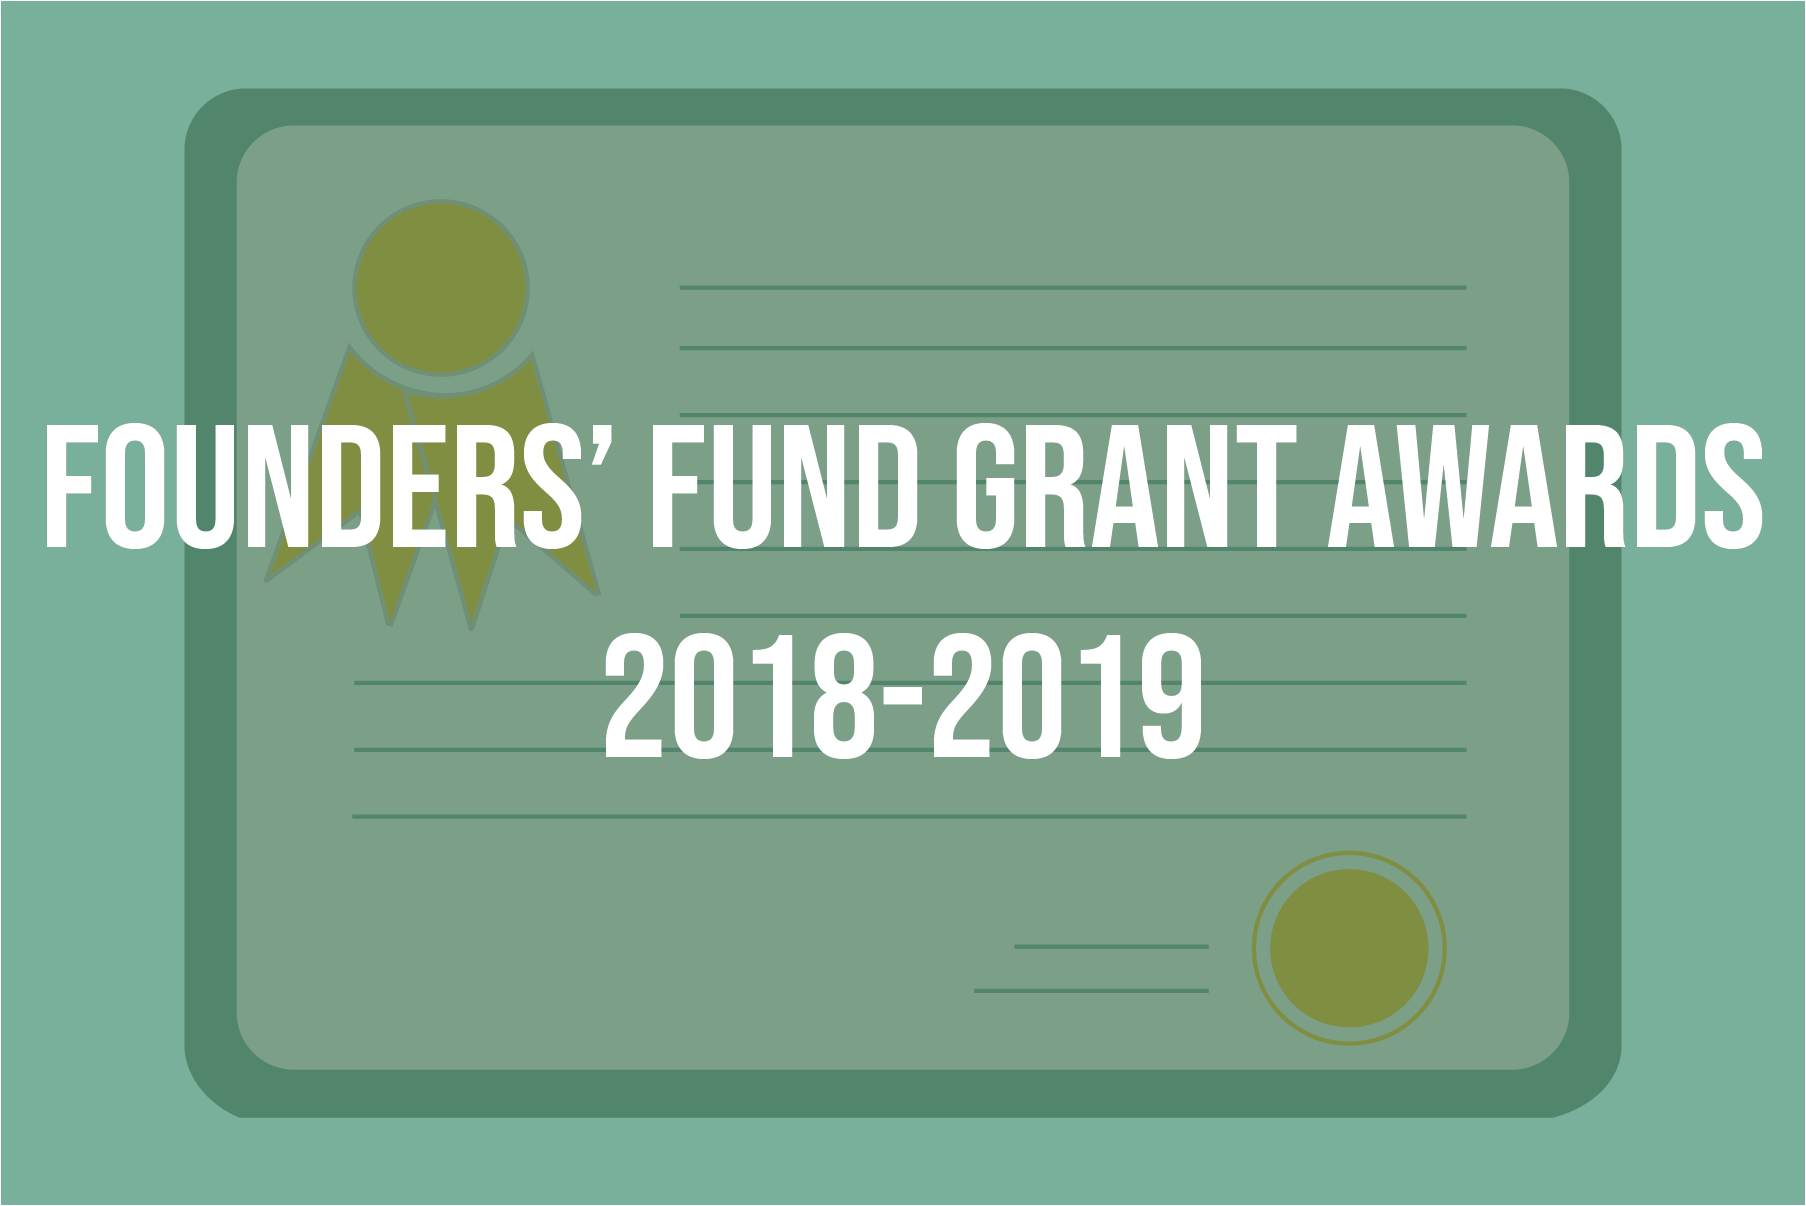 FOUNDERS FUND AWARDLOGO